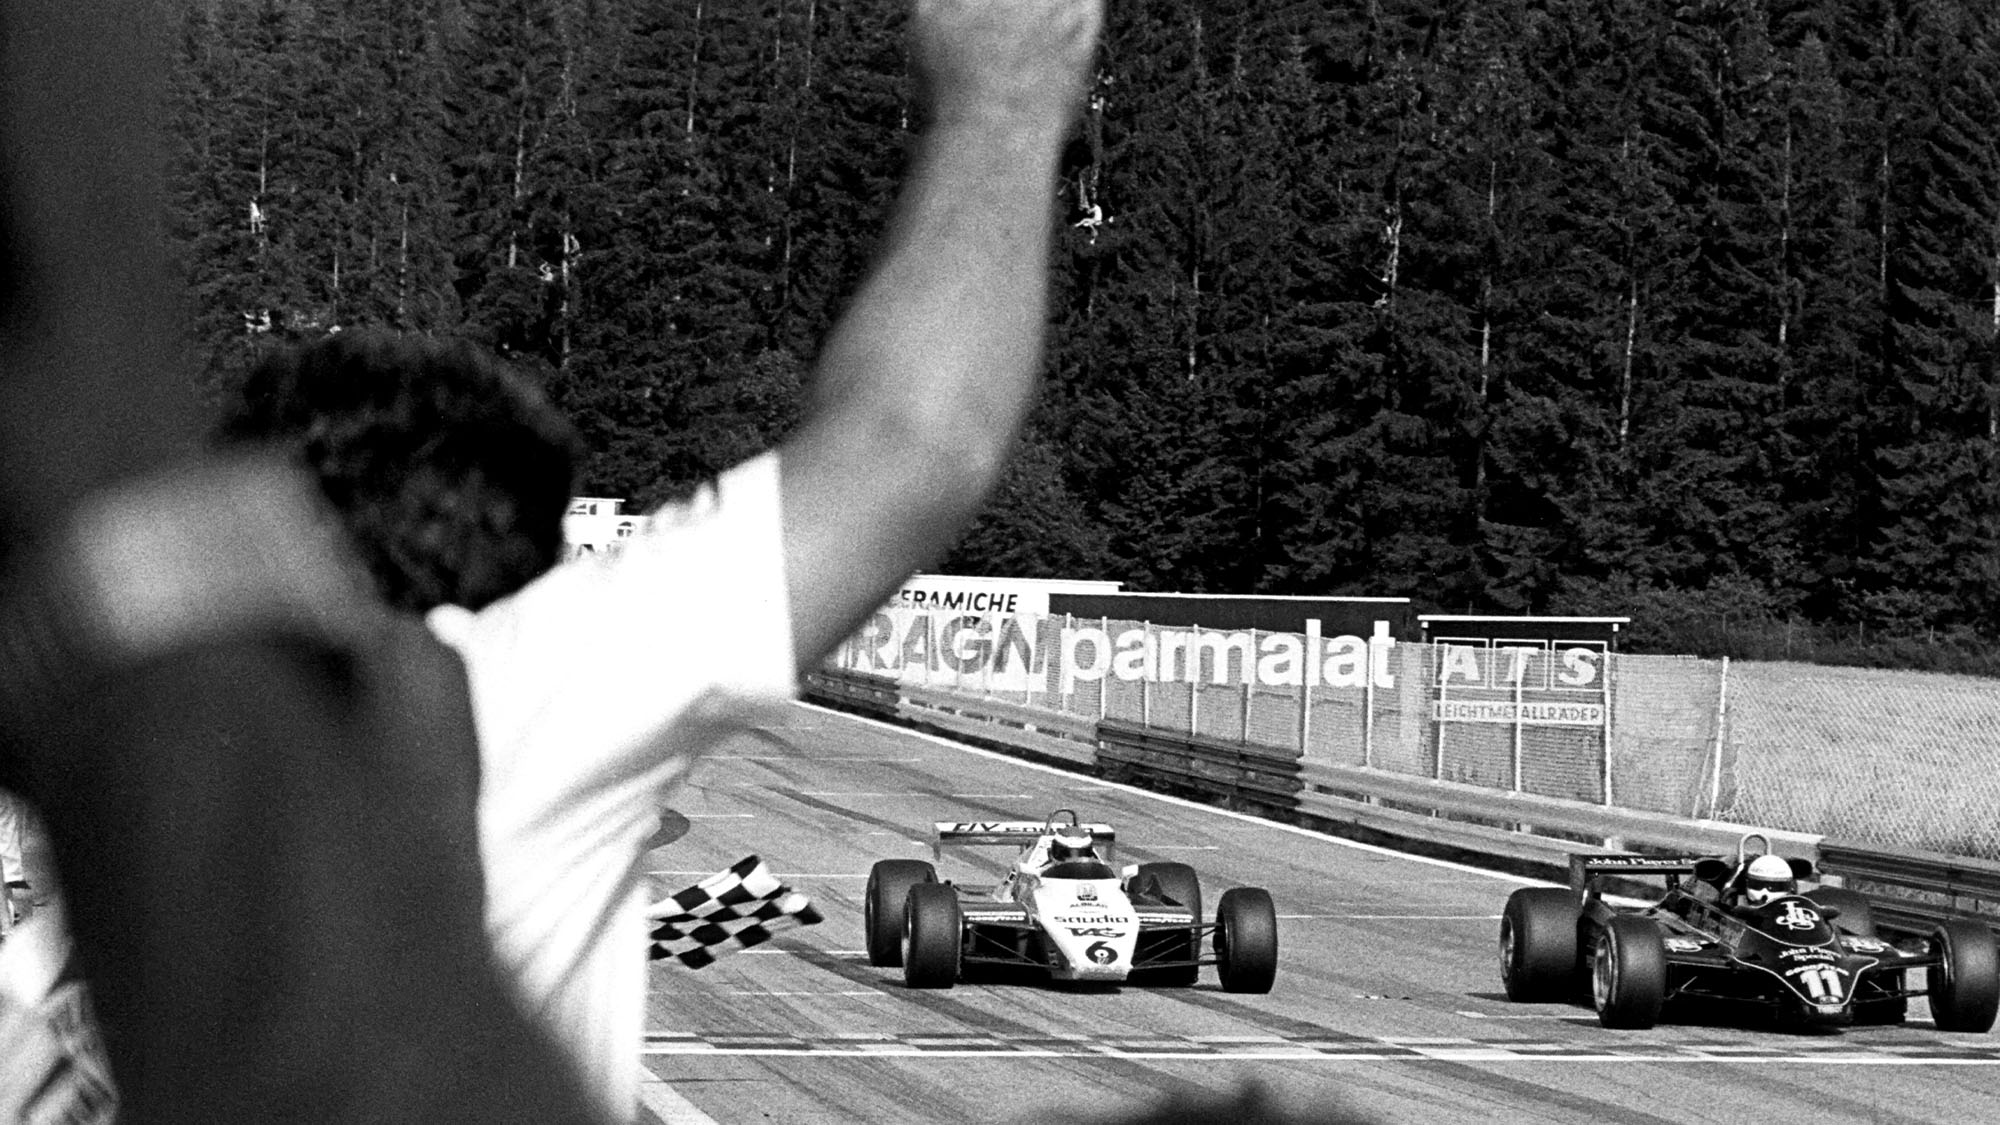 Elio de Angelis, Keke Rosberg, Lotus-Ford 91, Williams-Ford FW08, Grand Prix of Austria, Red Bull Ring, Spielberg, Austria, August 15, 1982. Elio de Angelis crosses the finish line just ahead of Keke Rosberg, and takes victory. (Photo by Bernard Cahier/Getty Images)